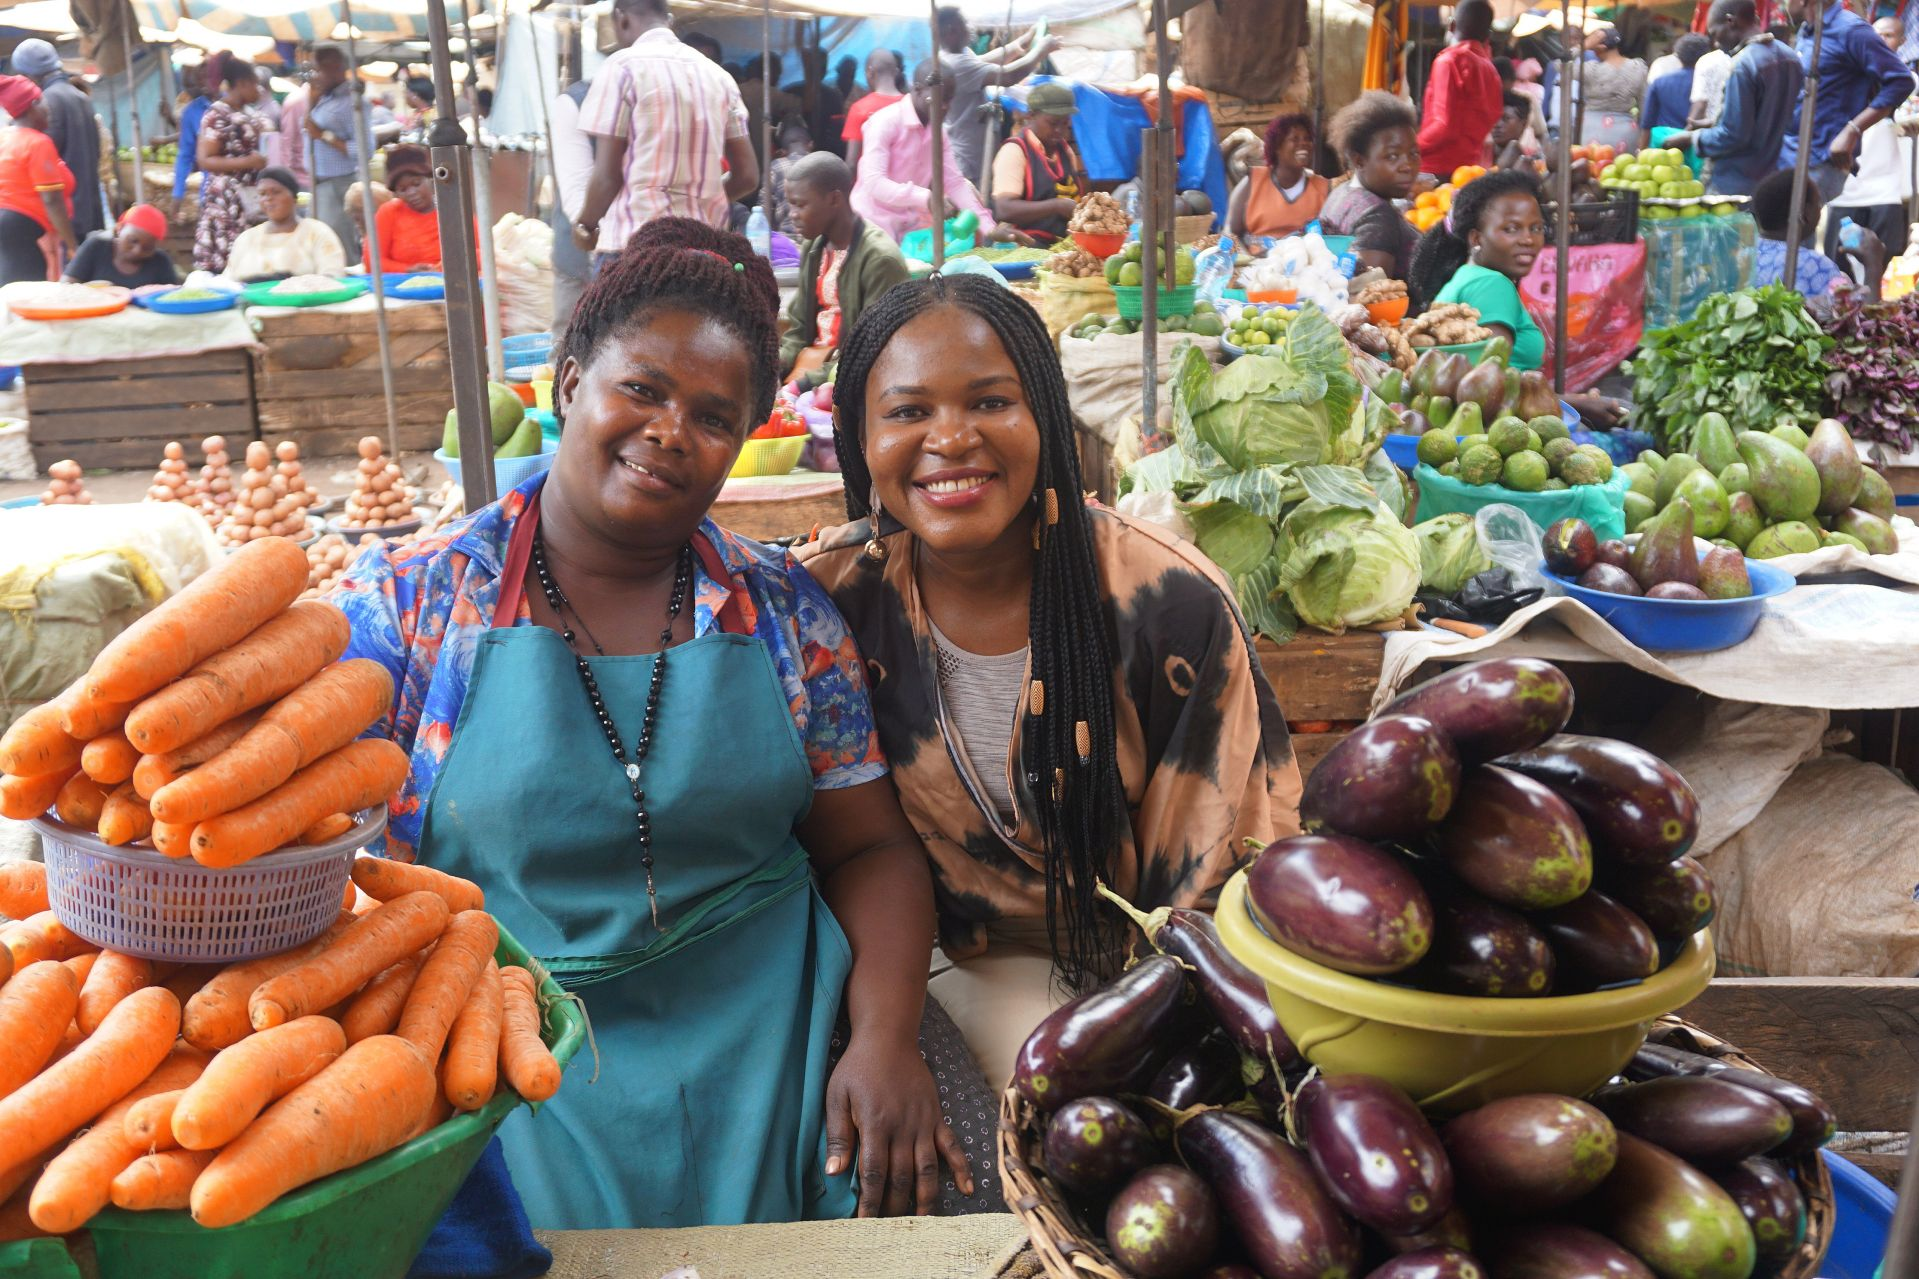 Linda Kugblenu '13 (right), who has a Fulbright Student research award in Uganda, poses with Dorothy, an entrepreneur who sells and fruits and vegetables in the Nakasero Market in Kampala. Kugblenu is leading focus groups with female entrepreneurs to explore savings and credit cooperatives, or SACCOs, which are significant drivers in the mobilization of women to acquire capital, invest in businesses, and become financially stable.